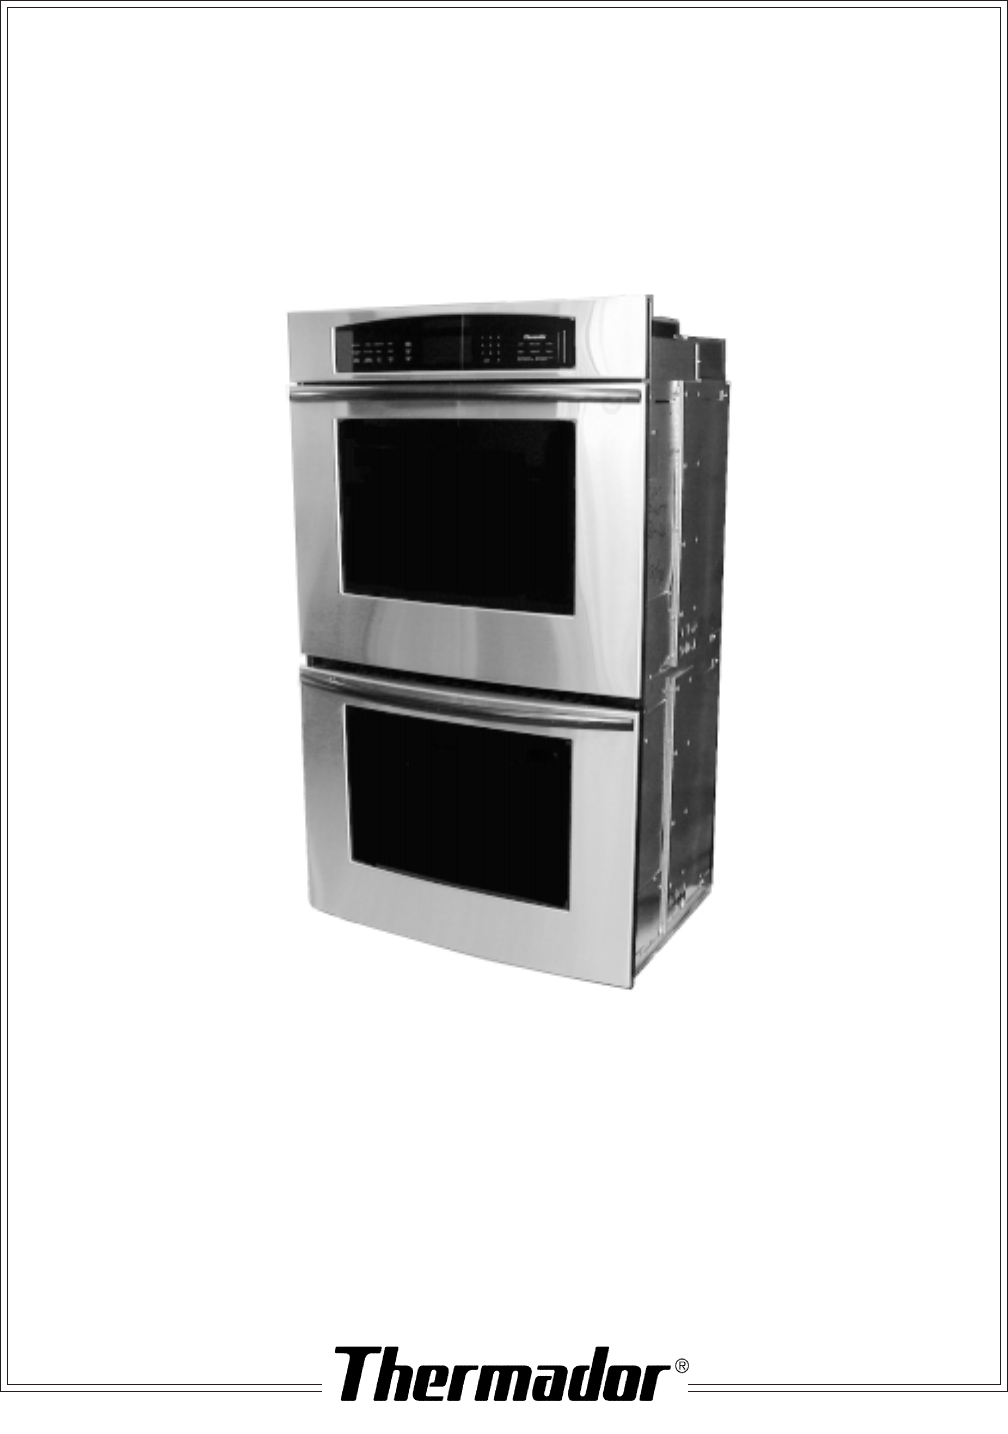 thermador microwave oven cm302 user guide manualsonline com rh kitchen manualsonline com thermador gas range service manual thermador range user manual